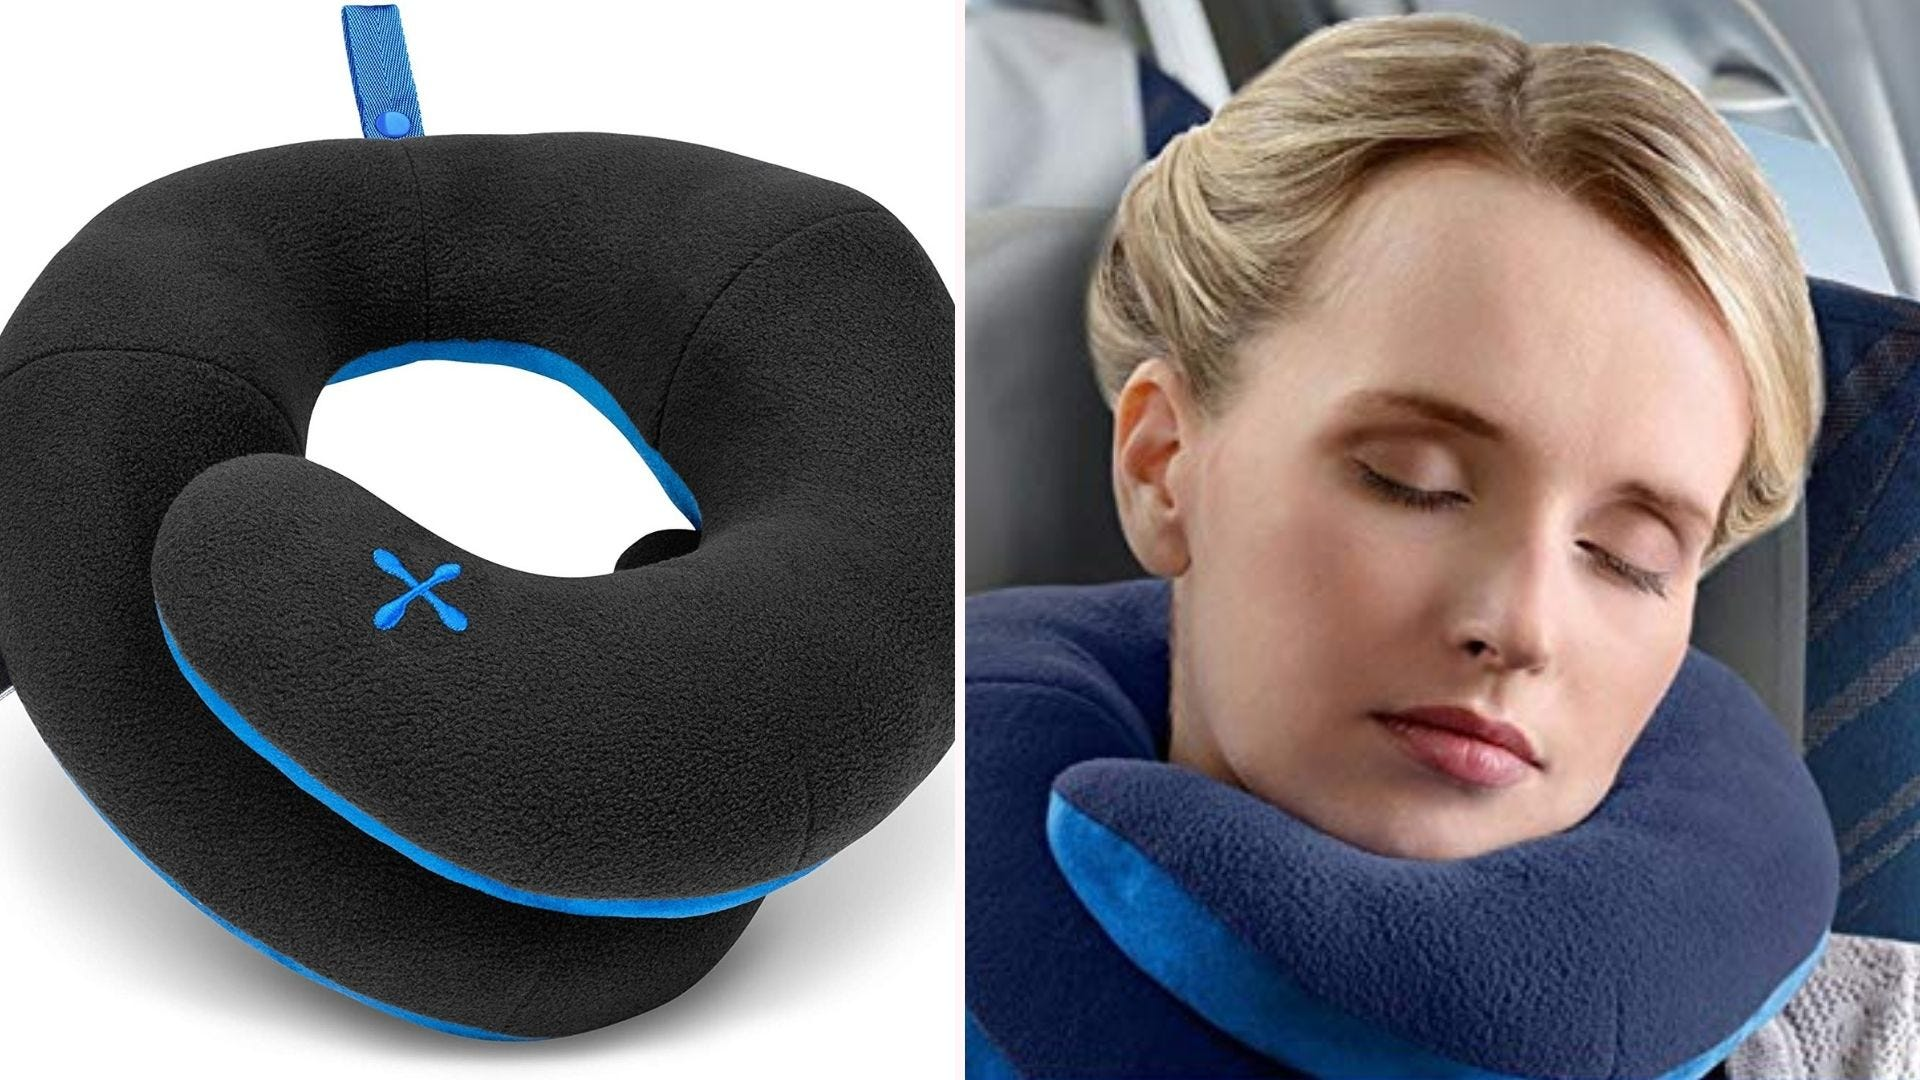 On the left a BCOZZY travel pillow and on the right a woman with the pillow on an airplane.